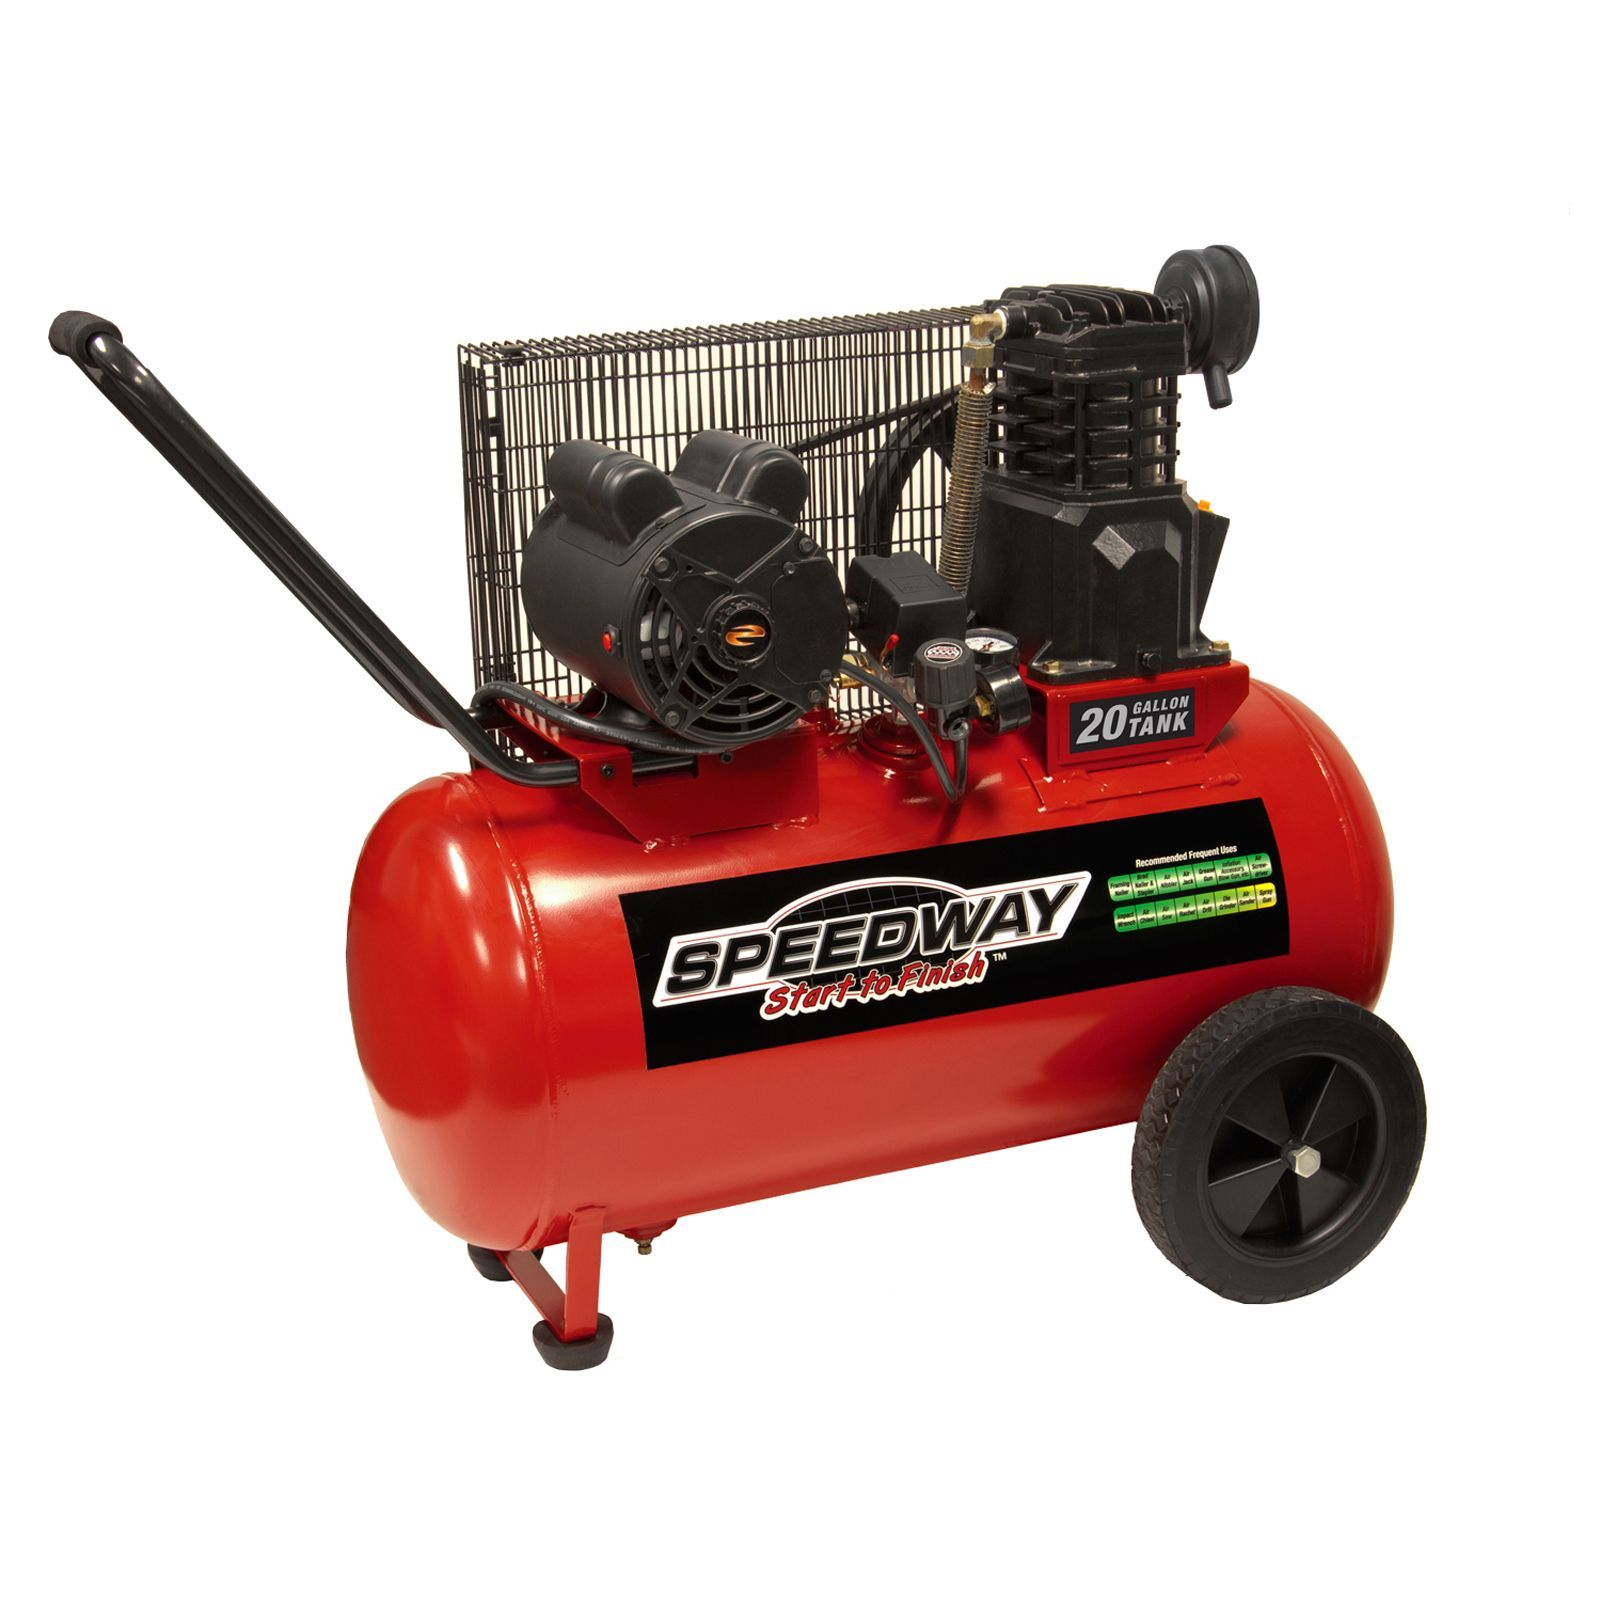 Speedway 20 Gallon Electric Powered Portable Air